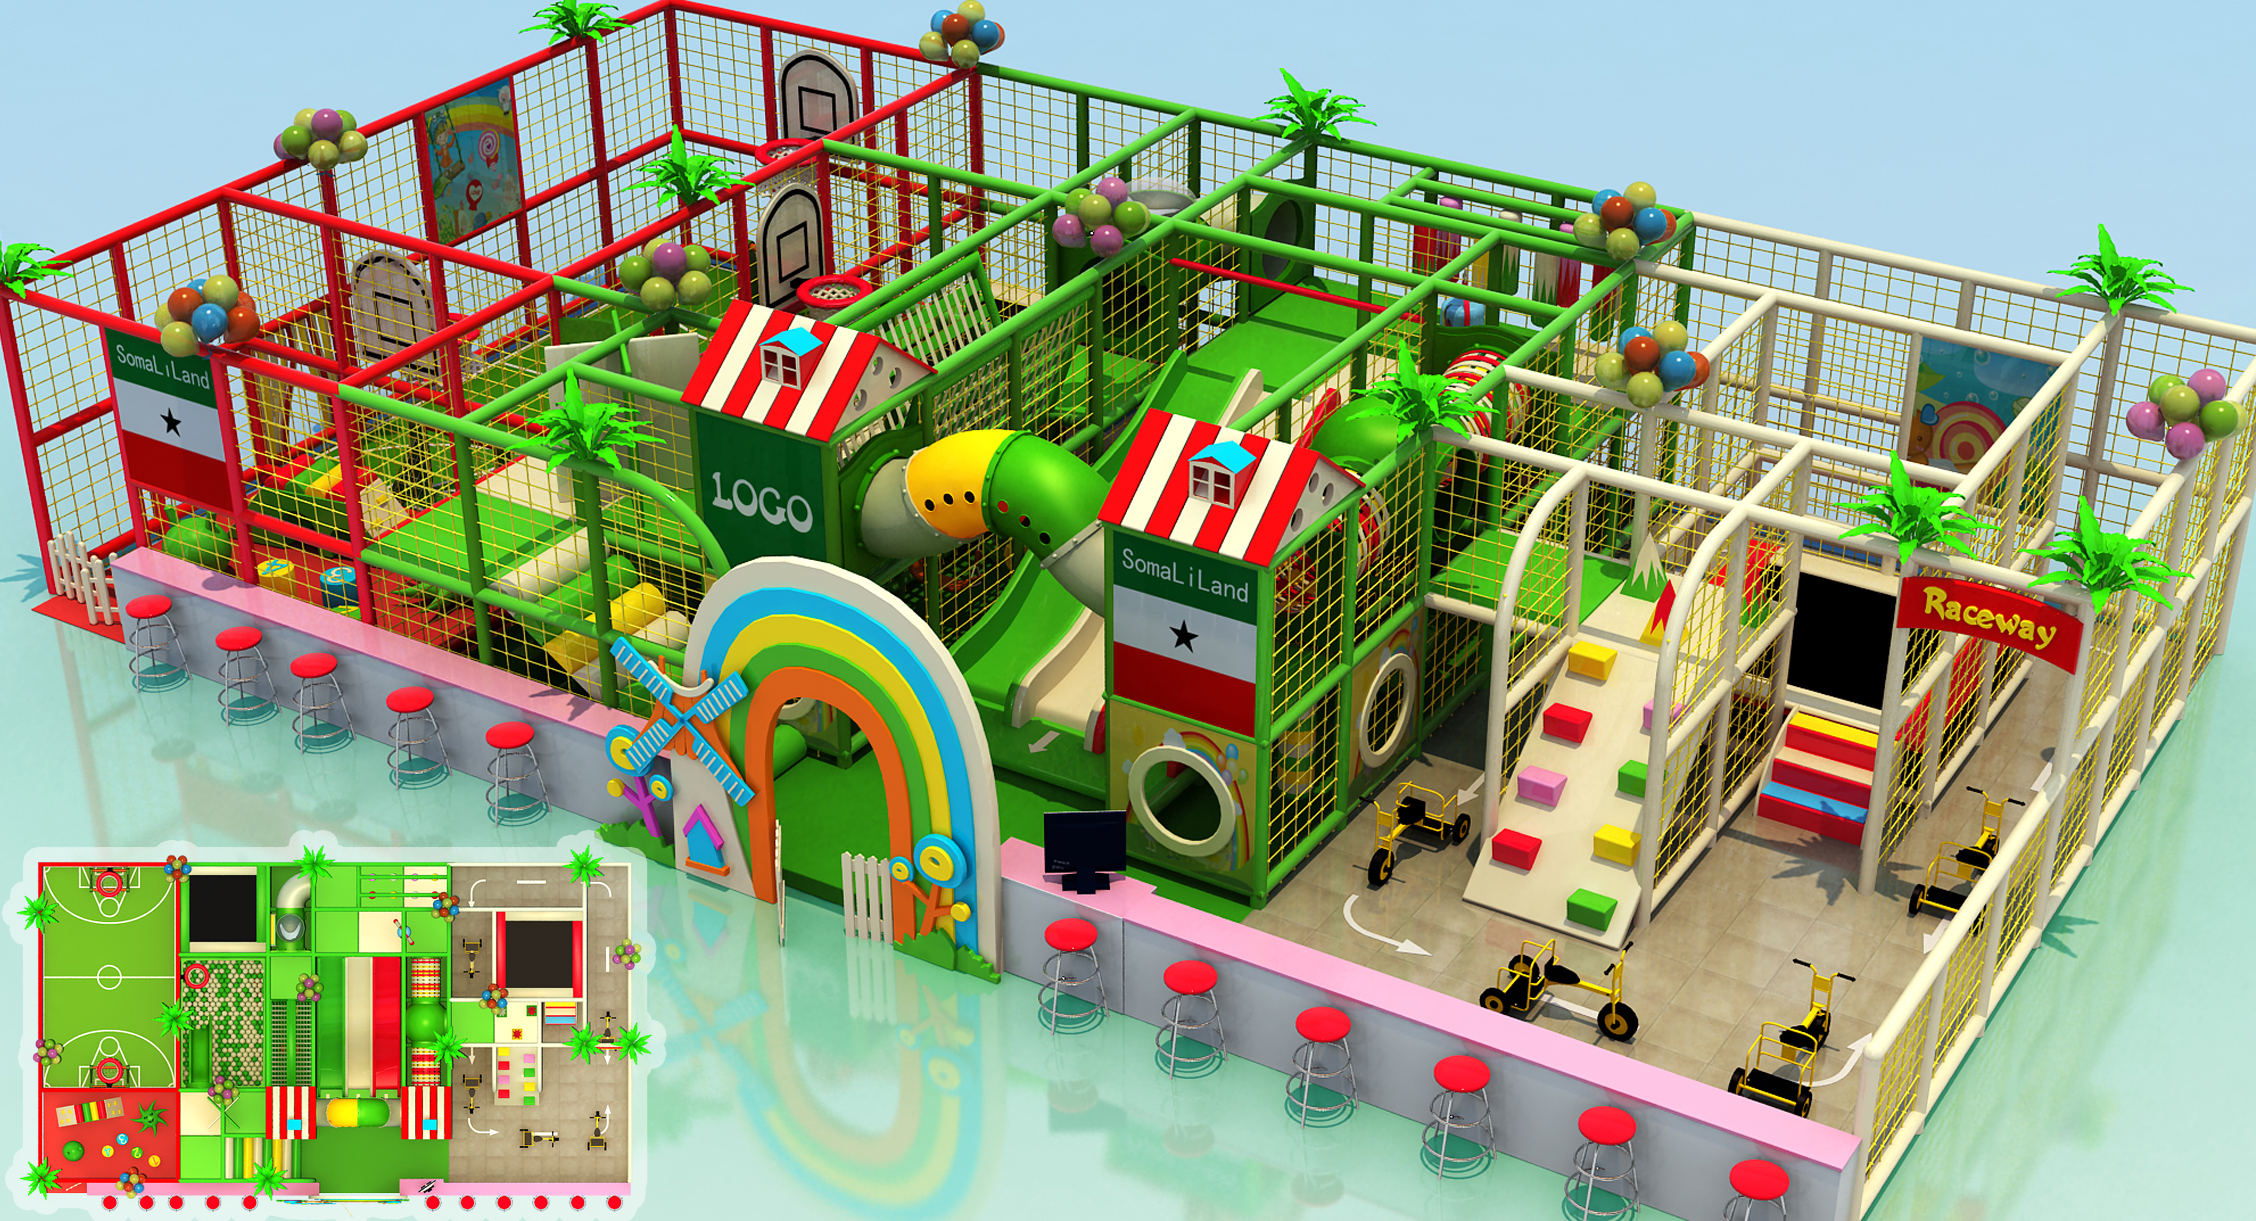 Ihram Kids For Sale Dubai: Indoor Playground Game Ocean Theme With Ball Pool